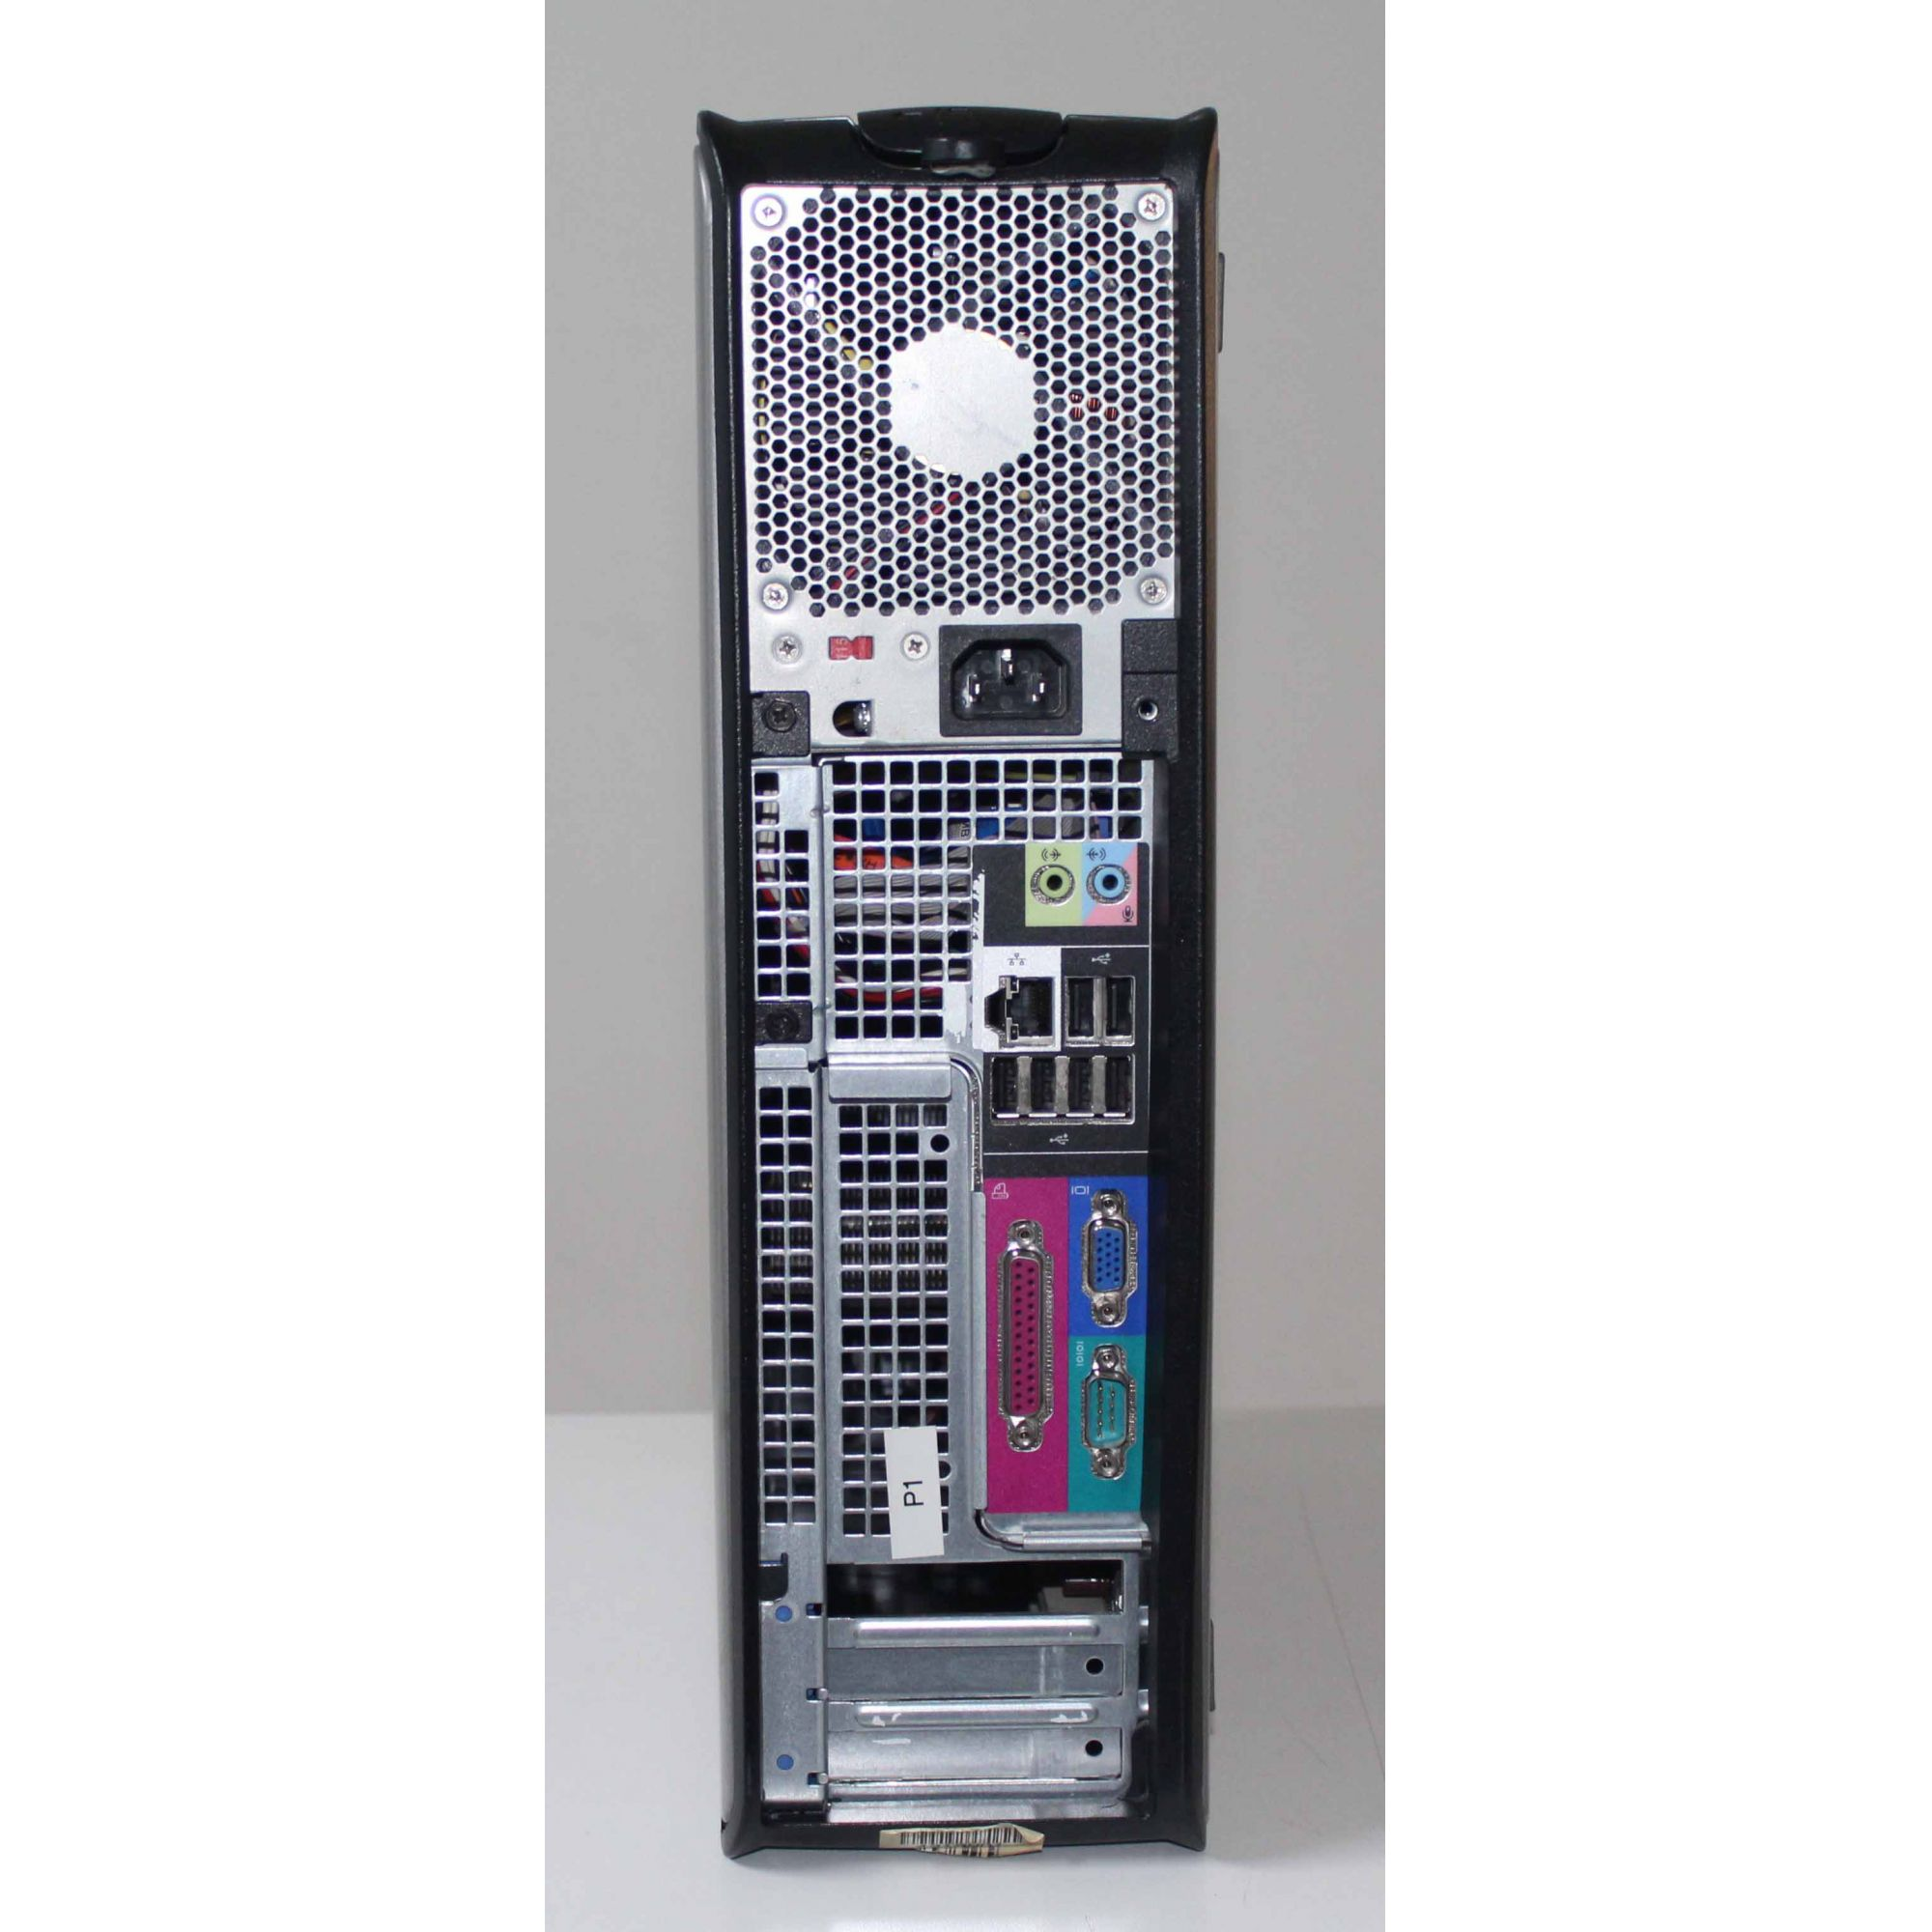 Computador Dell Optiplex 745 Intel Pentium Dual Core 1.60GHz 2GB HD-160GB